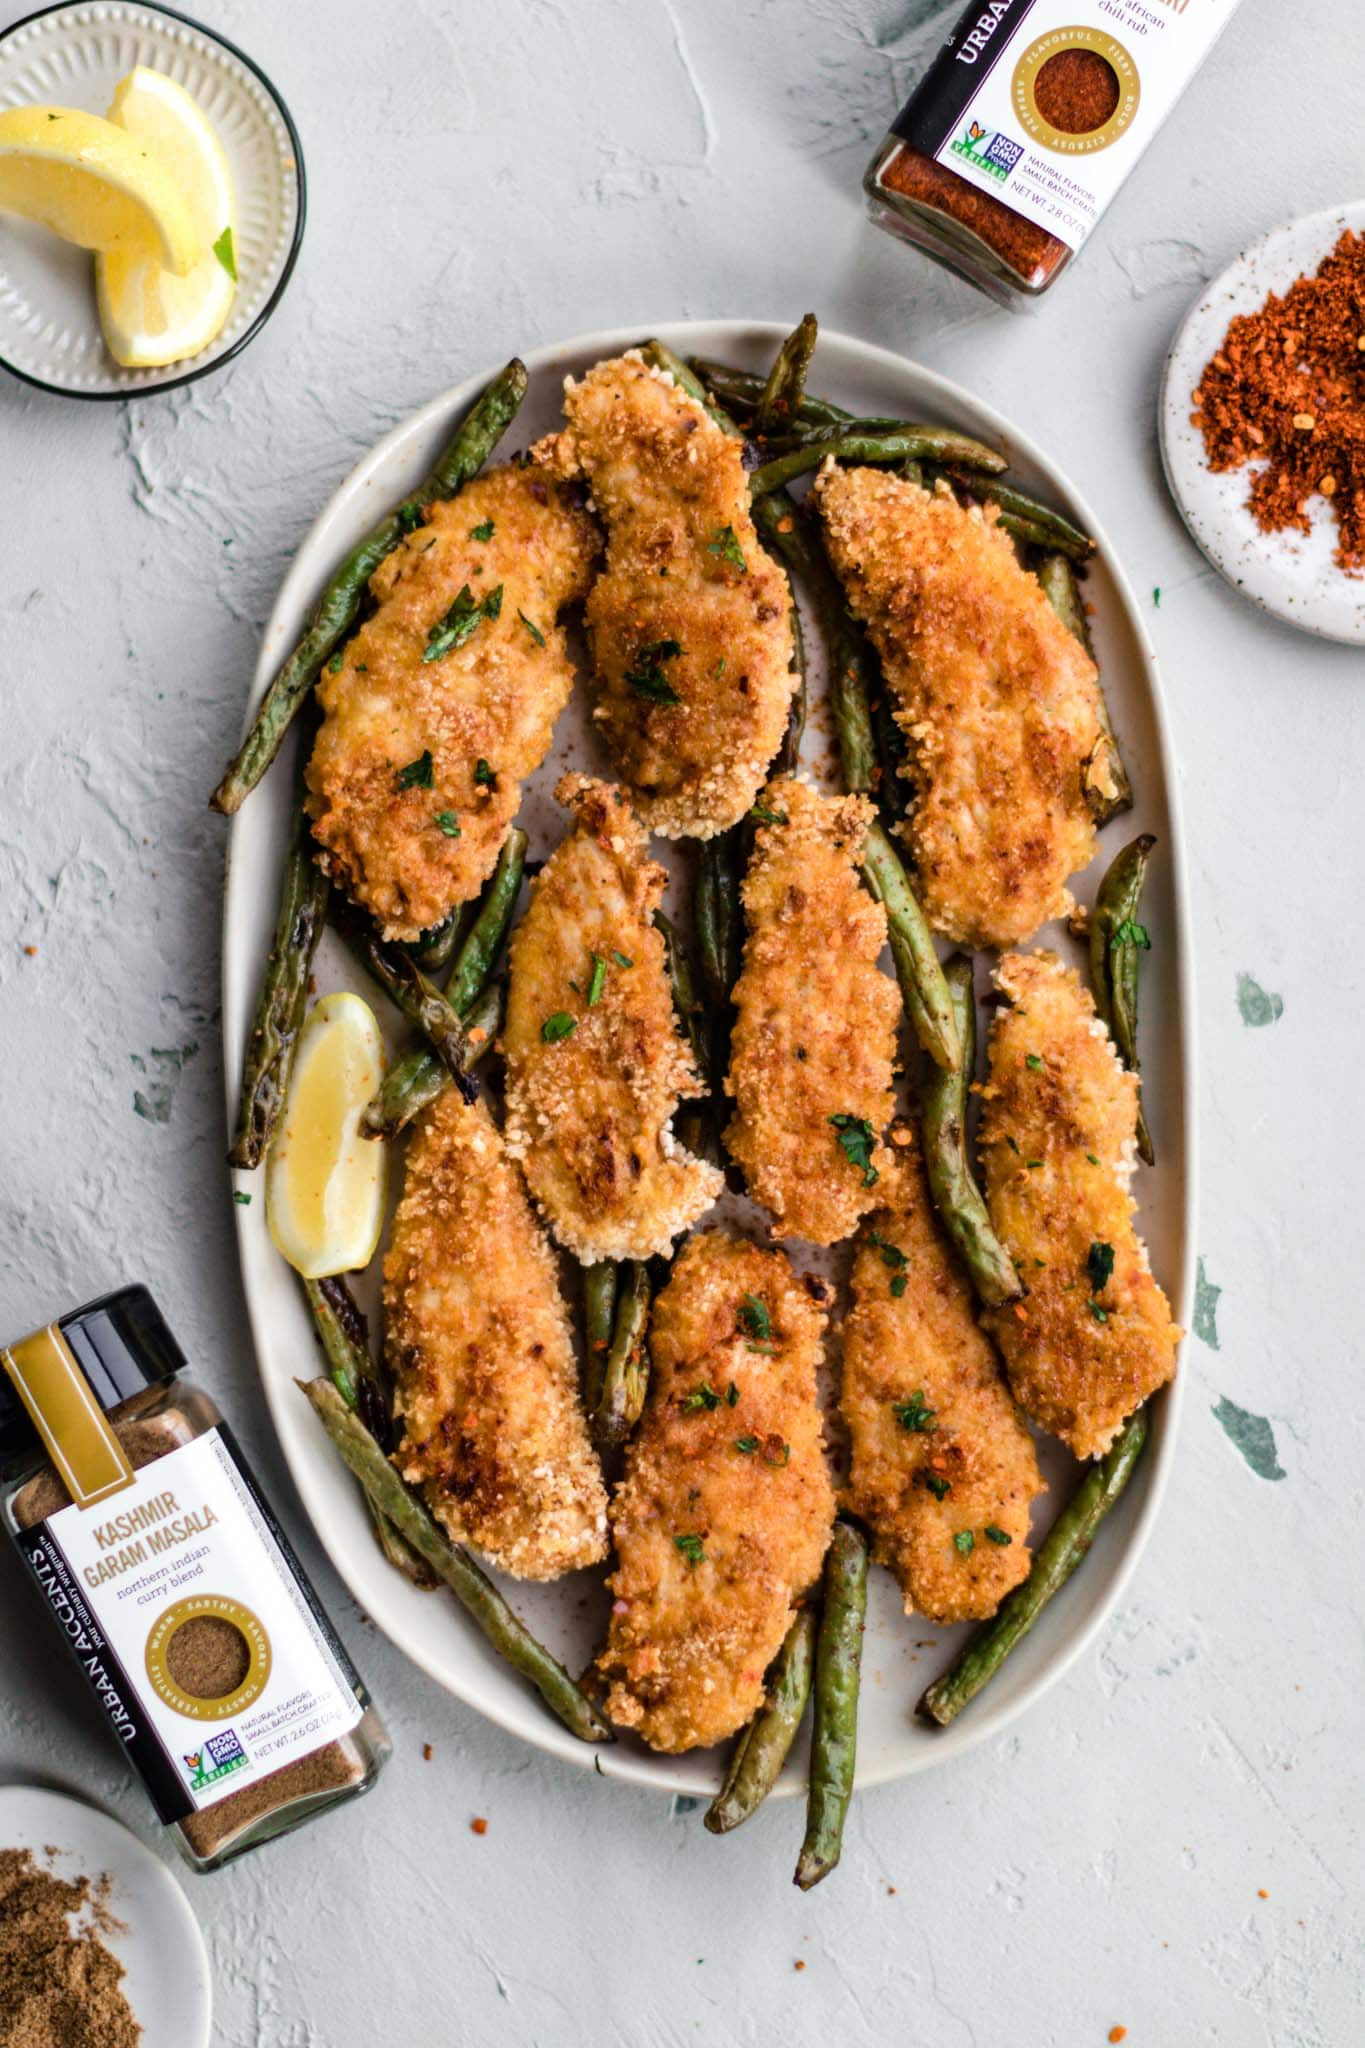 Baked Peri Peri Chicken Tenders with Masala Green Beans garnished with a lemon wedge on a white oval platter alongside jars of Mozambique Garam Masala and Peri Peri Spice Blends.